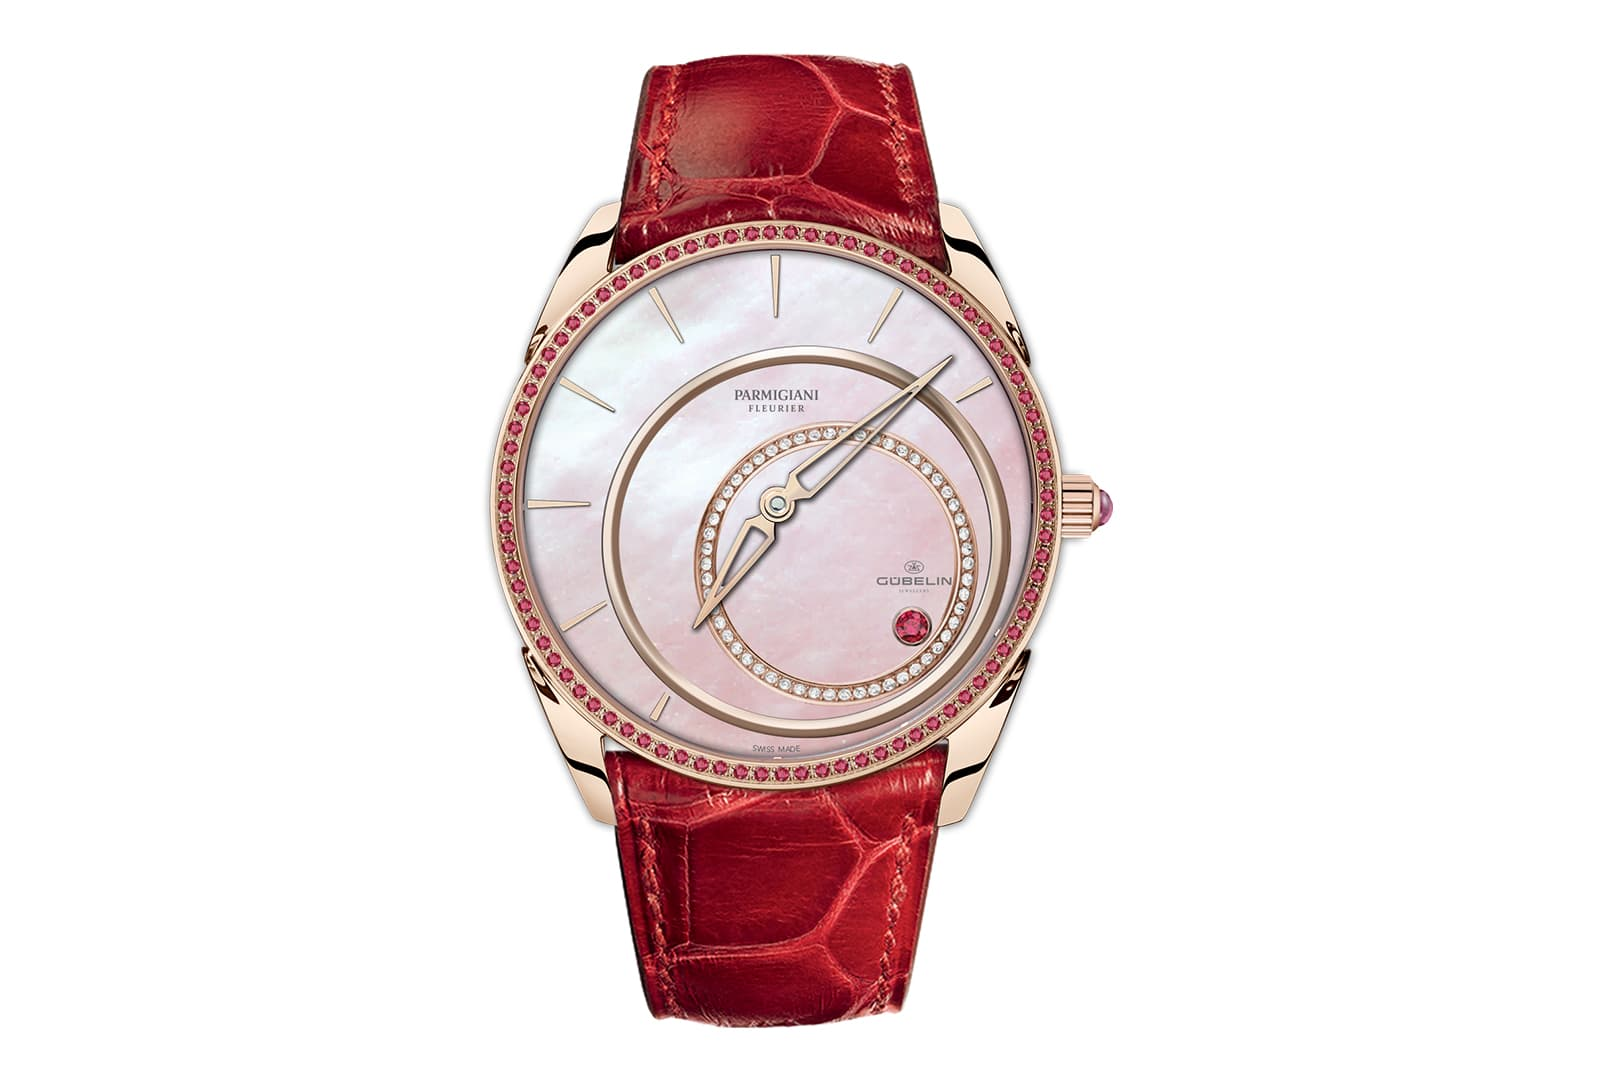 Parmigiani Fleurier timepiece with mother-of-pearl dial and red gold case paved with rubies